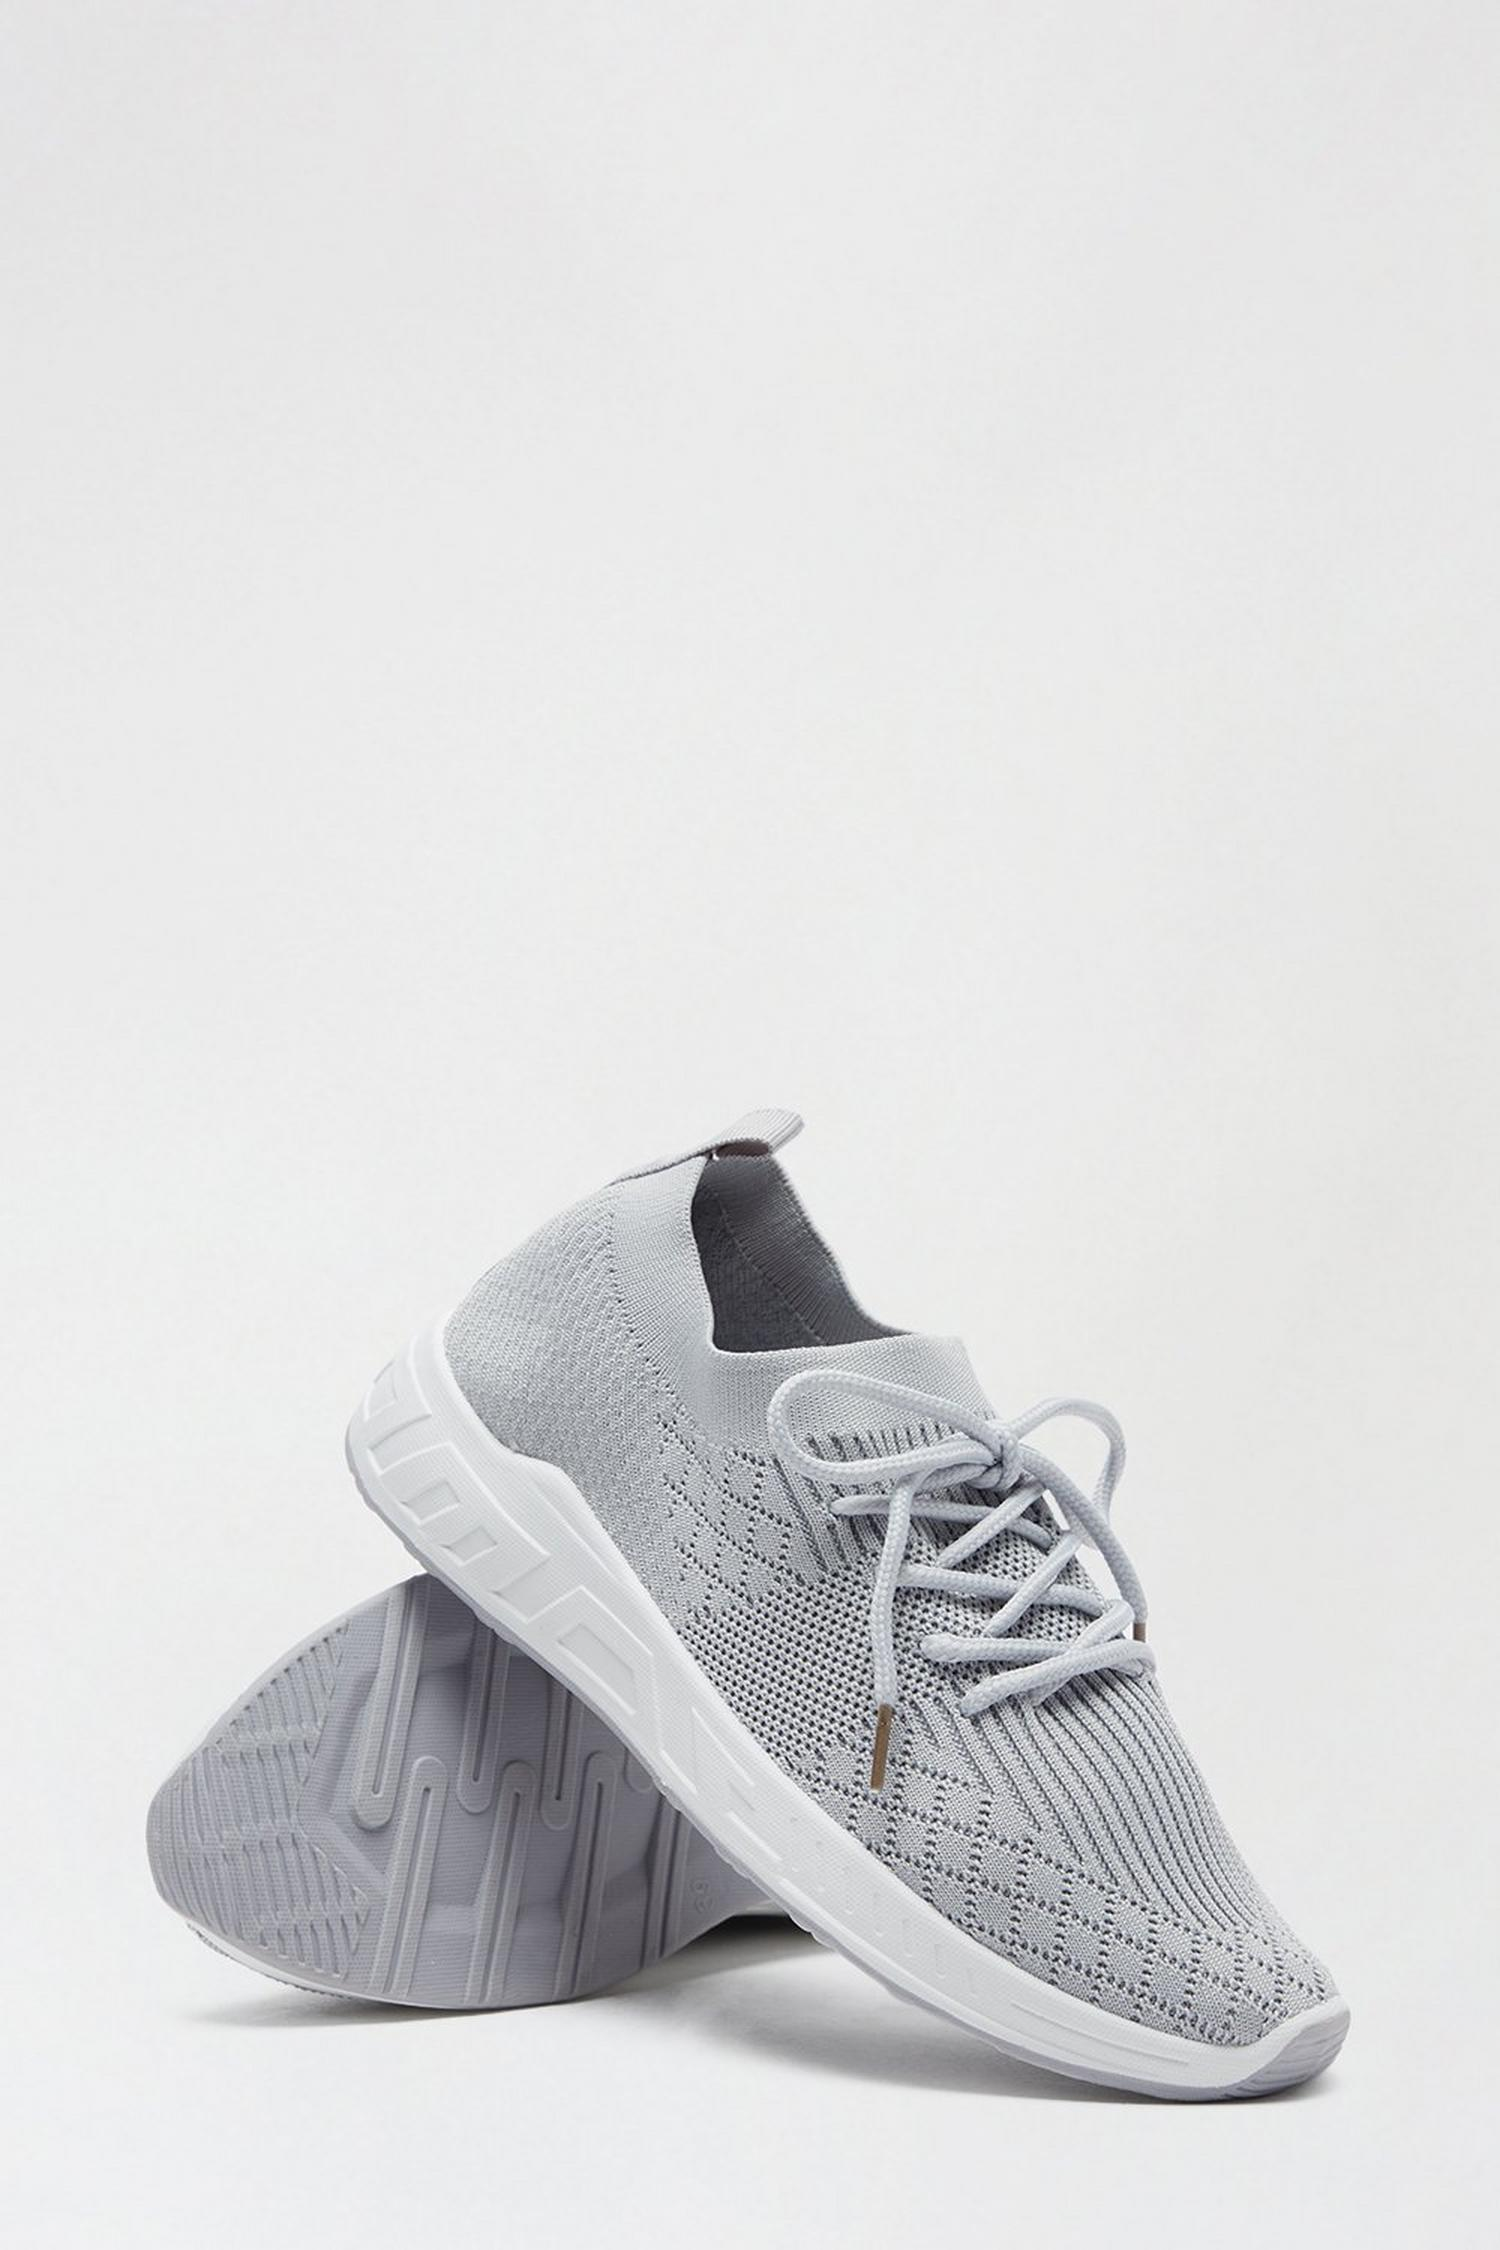 131 Grey Ivanna Knit Sports Trainer image number 4